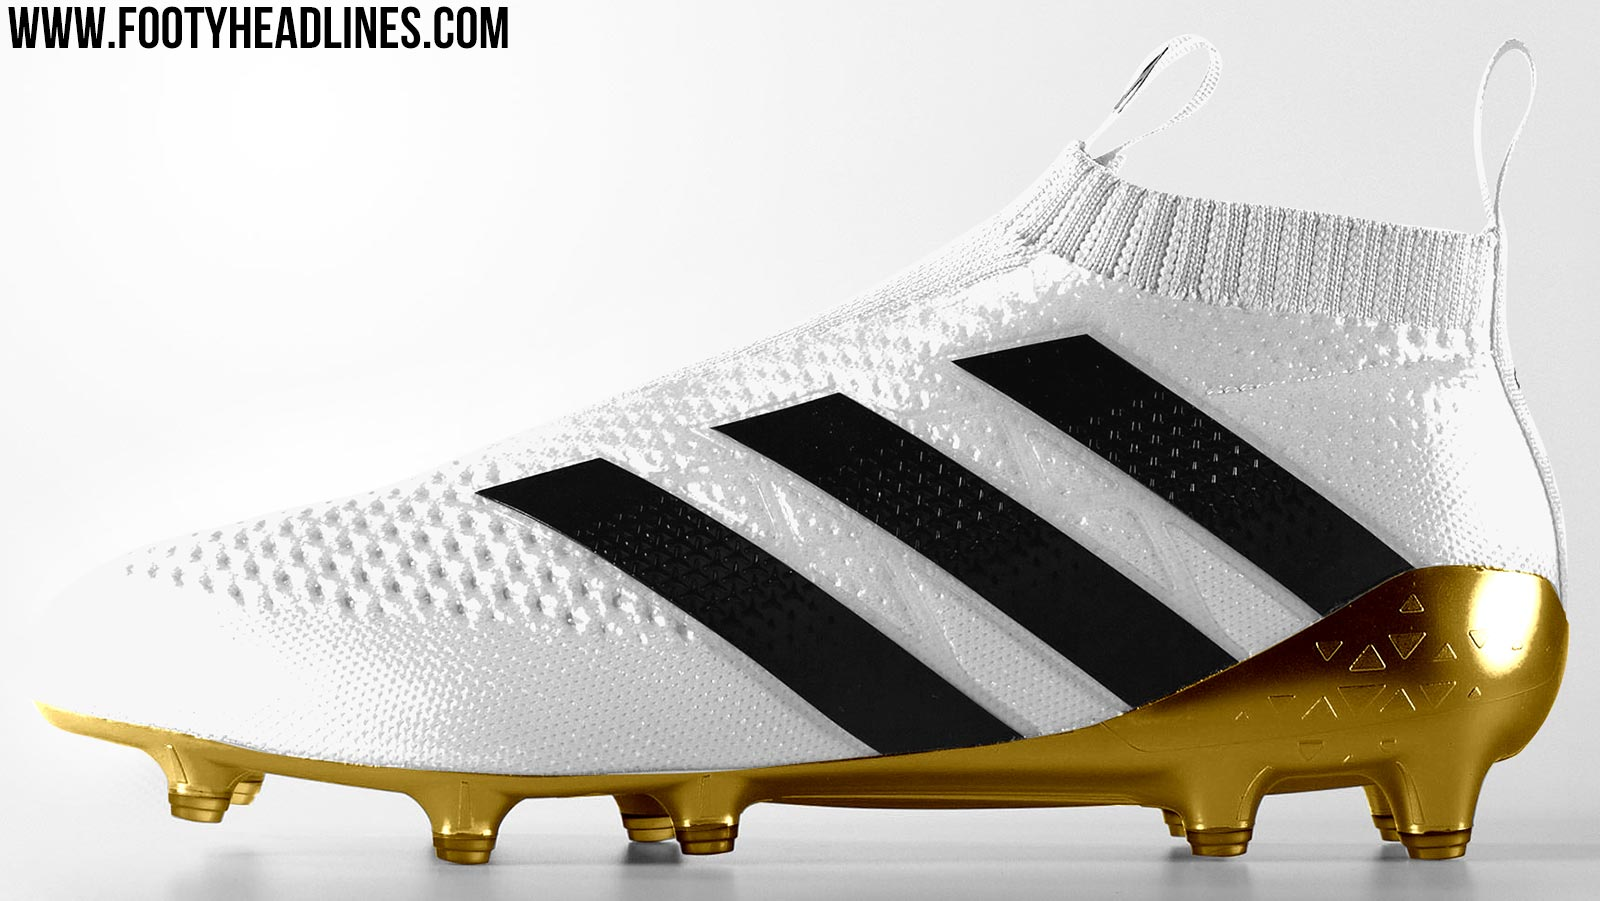 10 stunning adidas ace 16 purecontrol colorway concepts. Black Bedroom Furniture Sets. Home Design Ideas